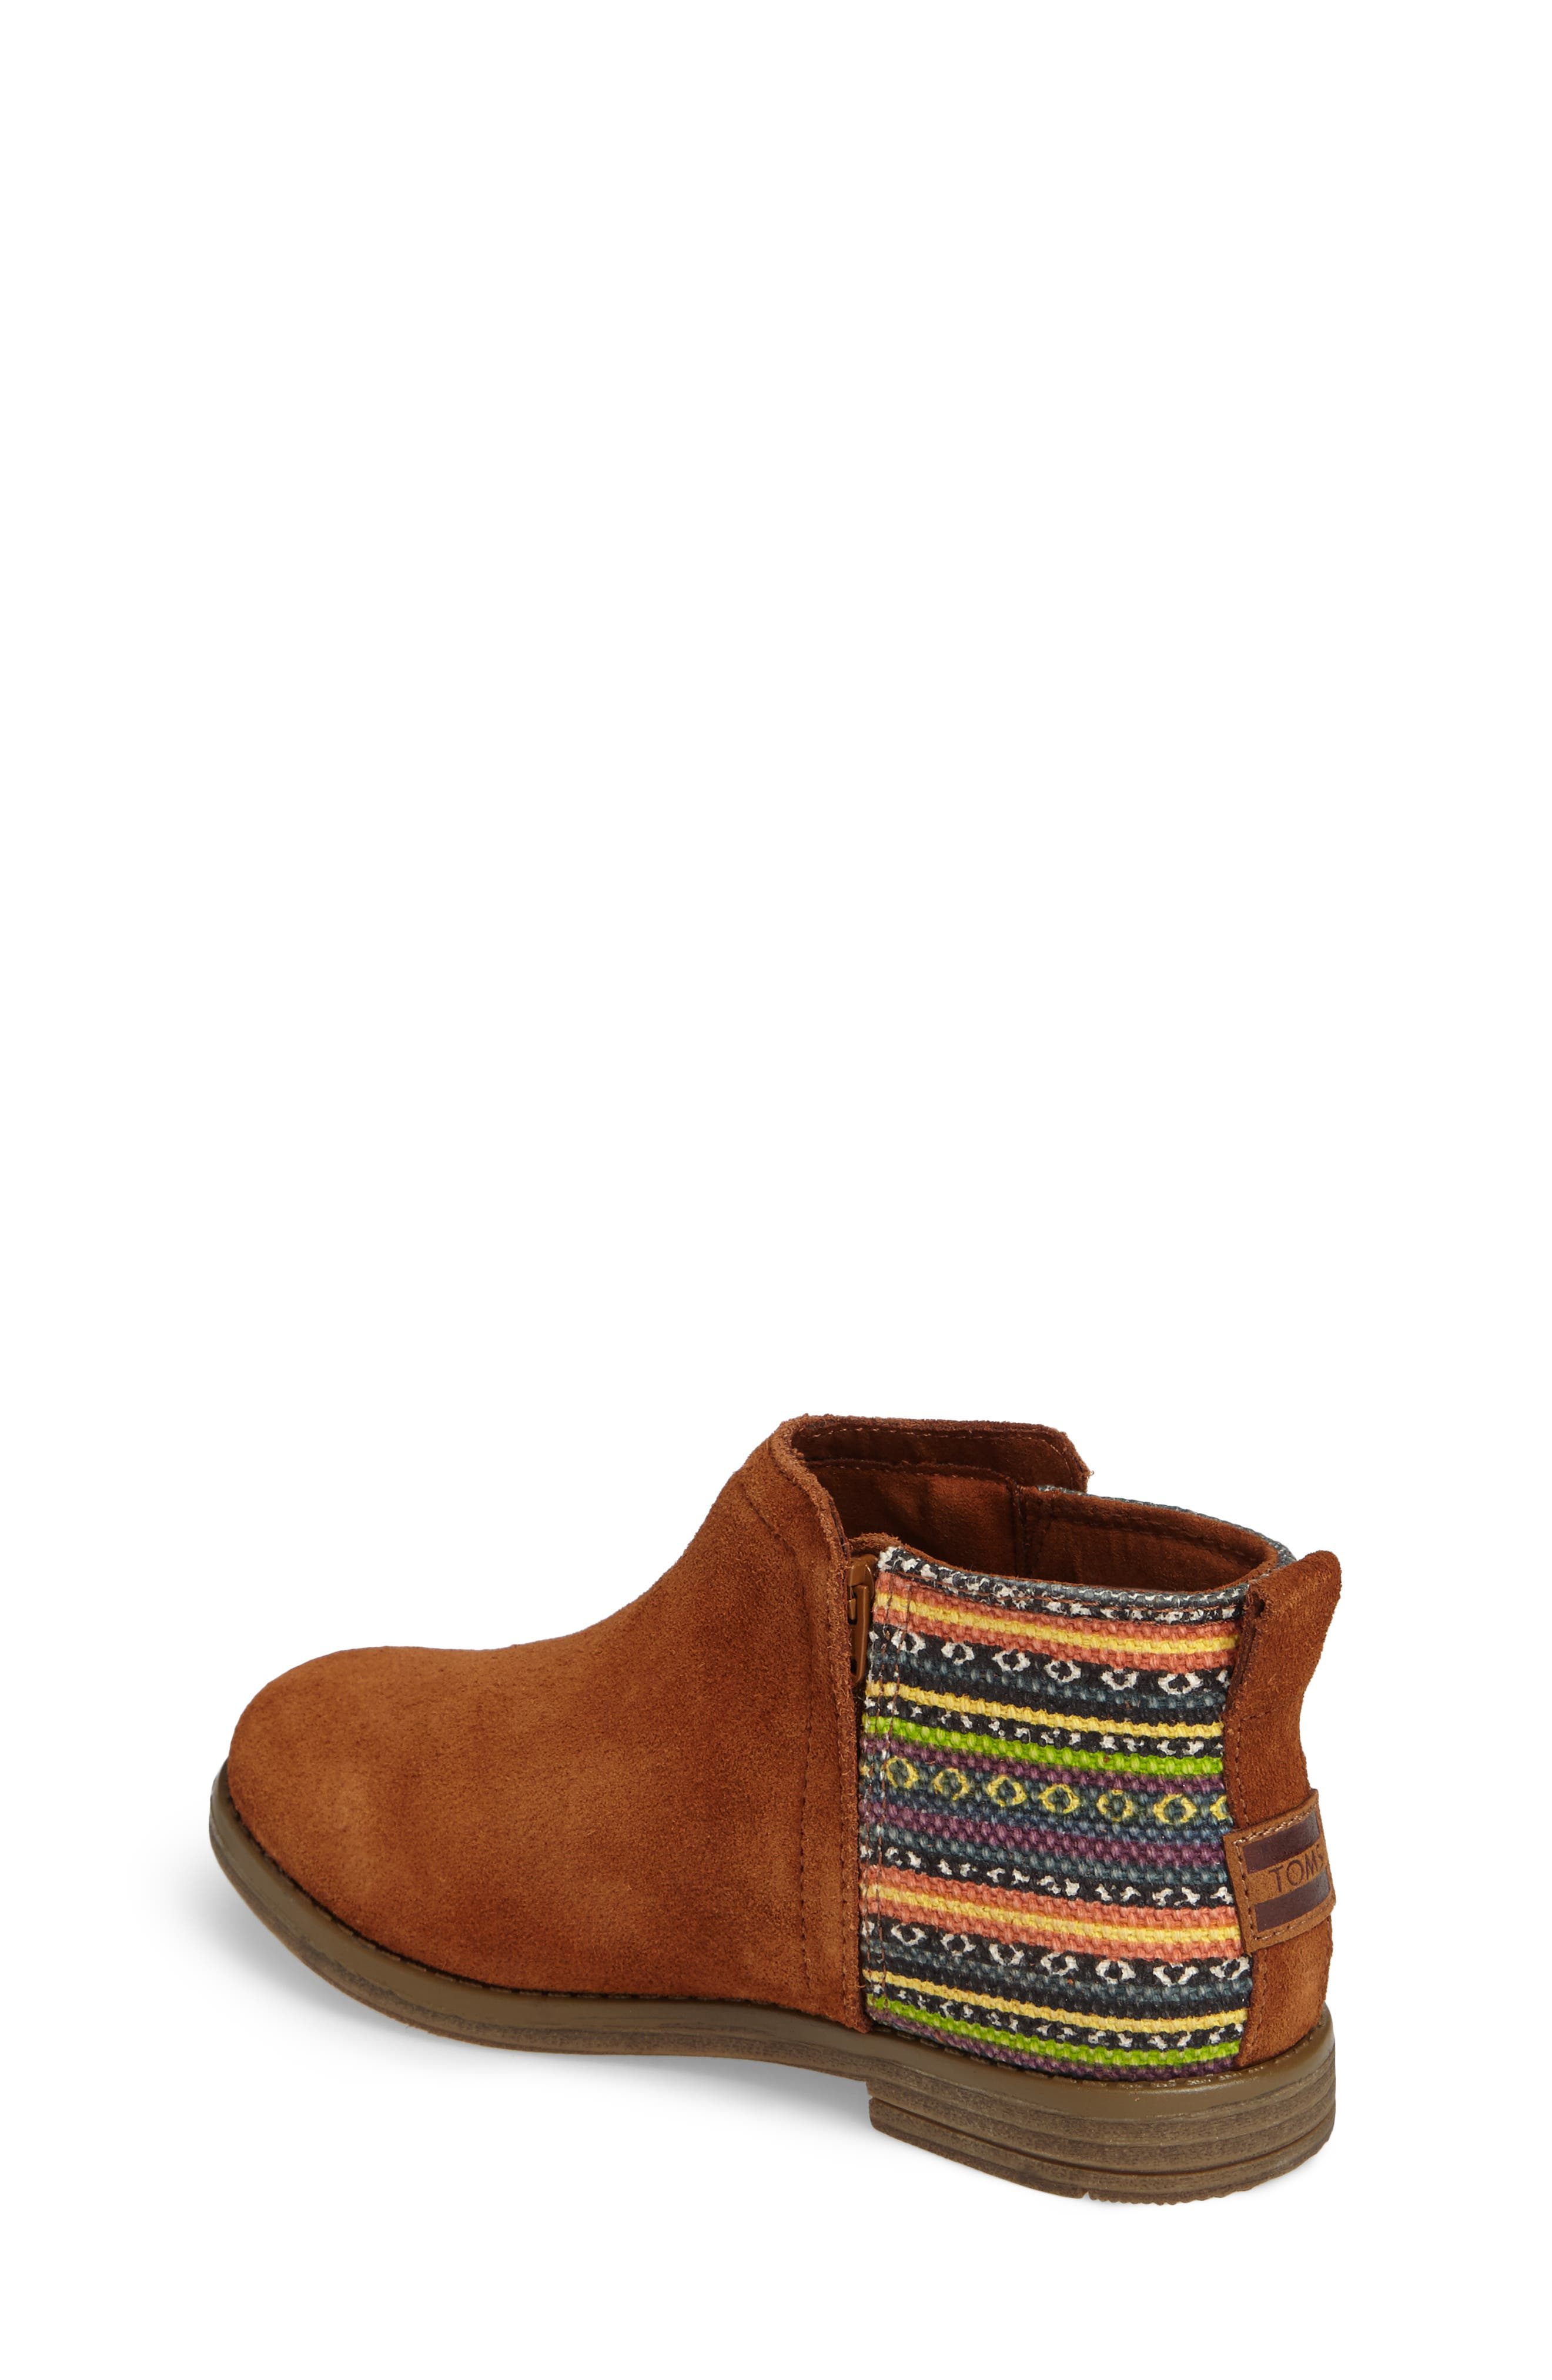 Deia Mixed Media Bootie,                             Alternate thumbnail 2, color,                             Cinnamon Suede